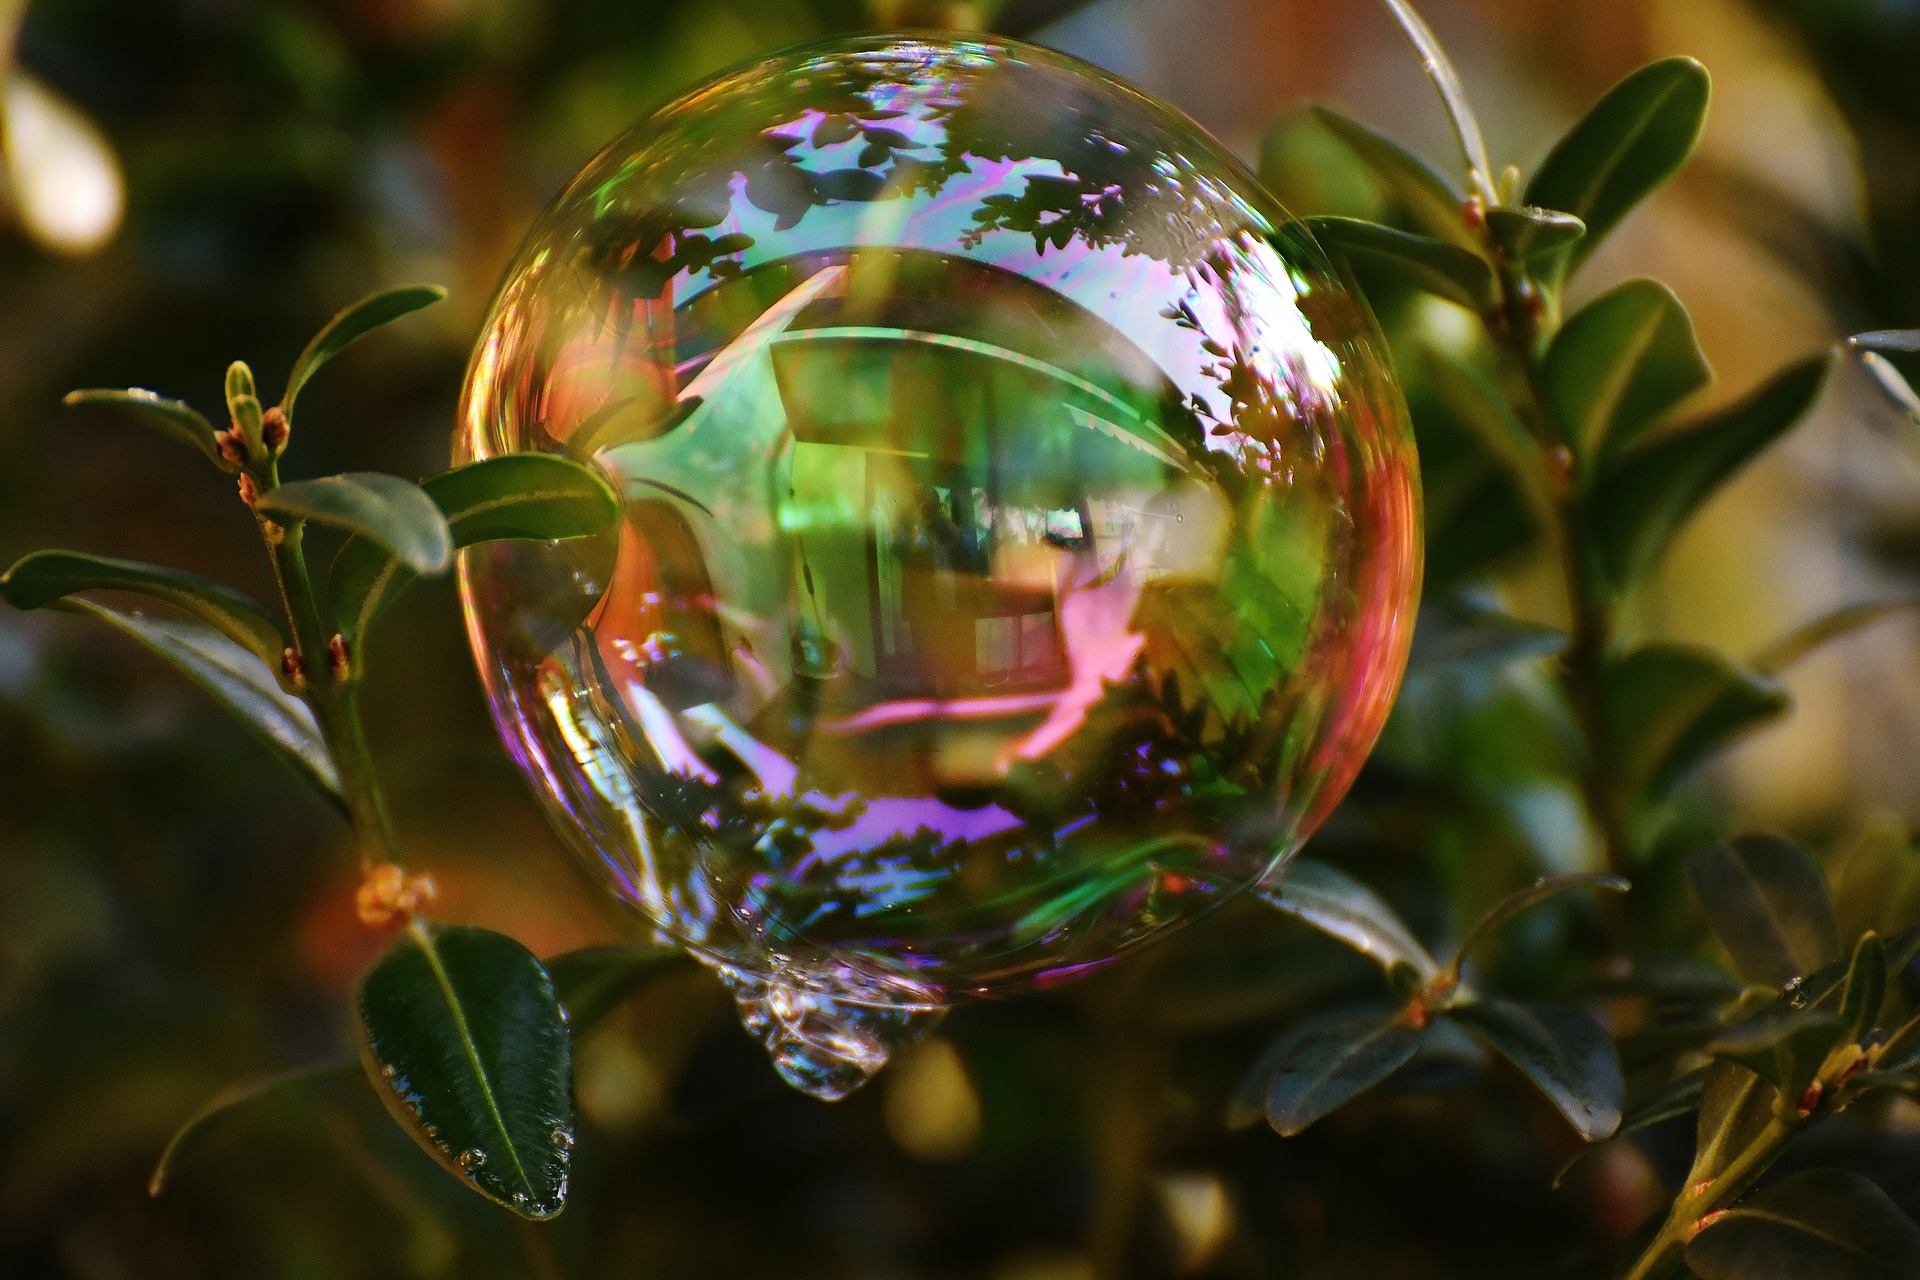 soap-bubble-1873425_1920